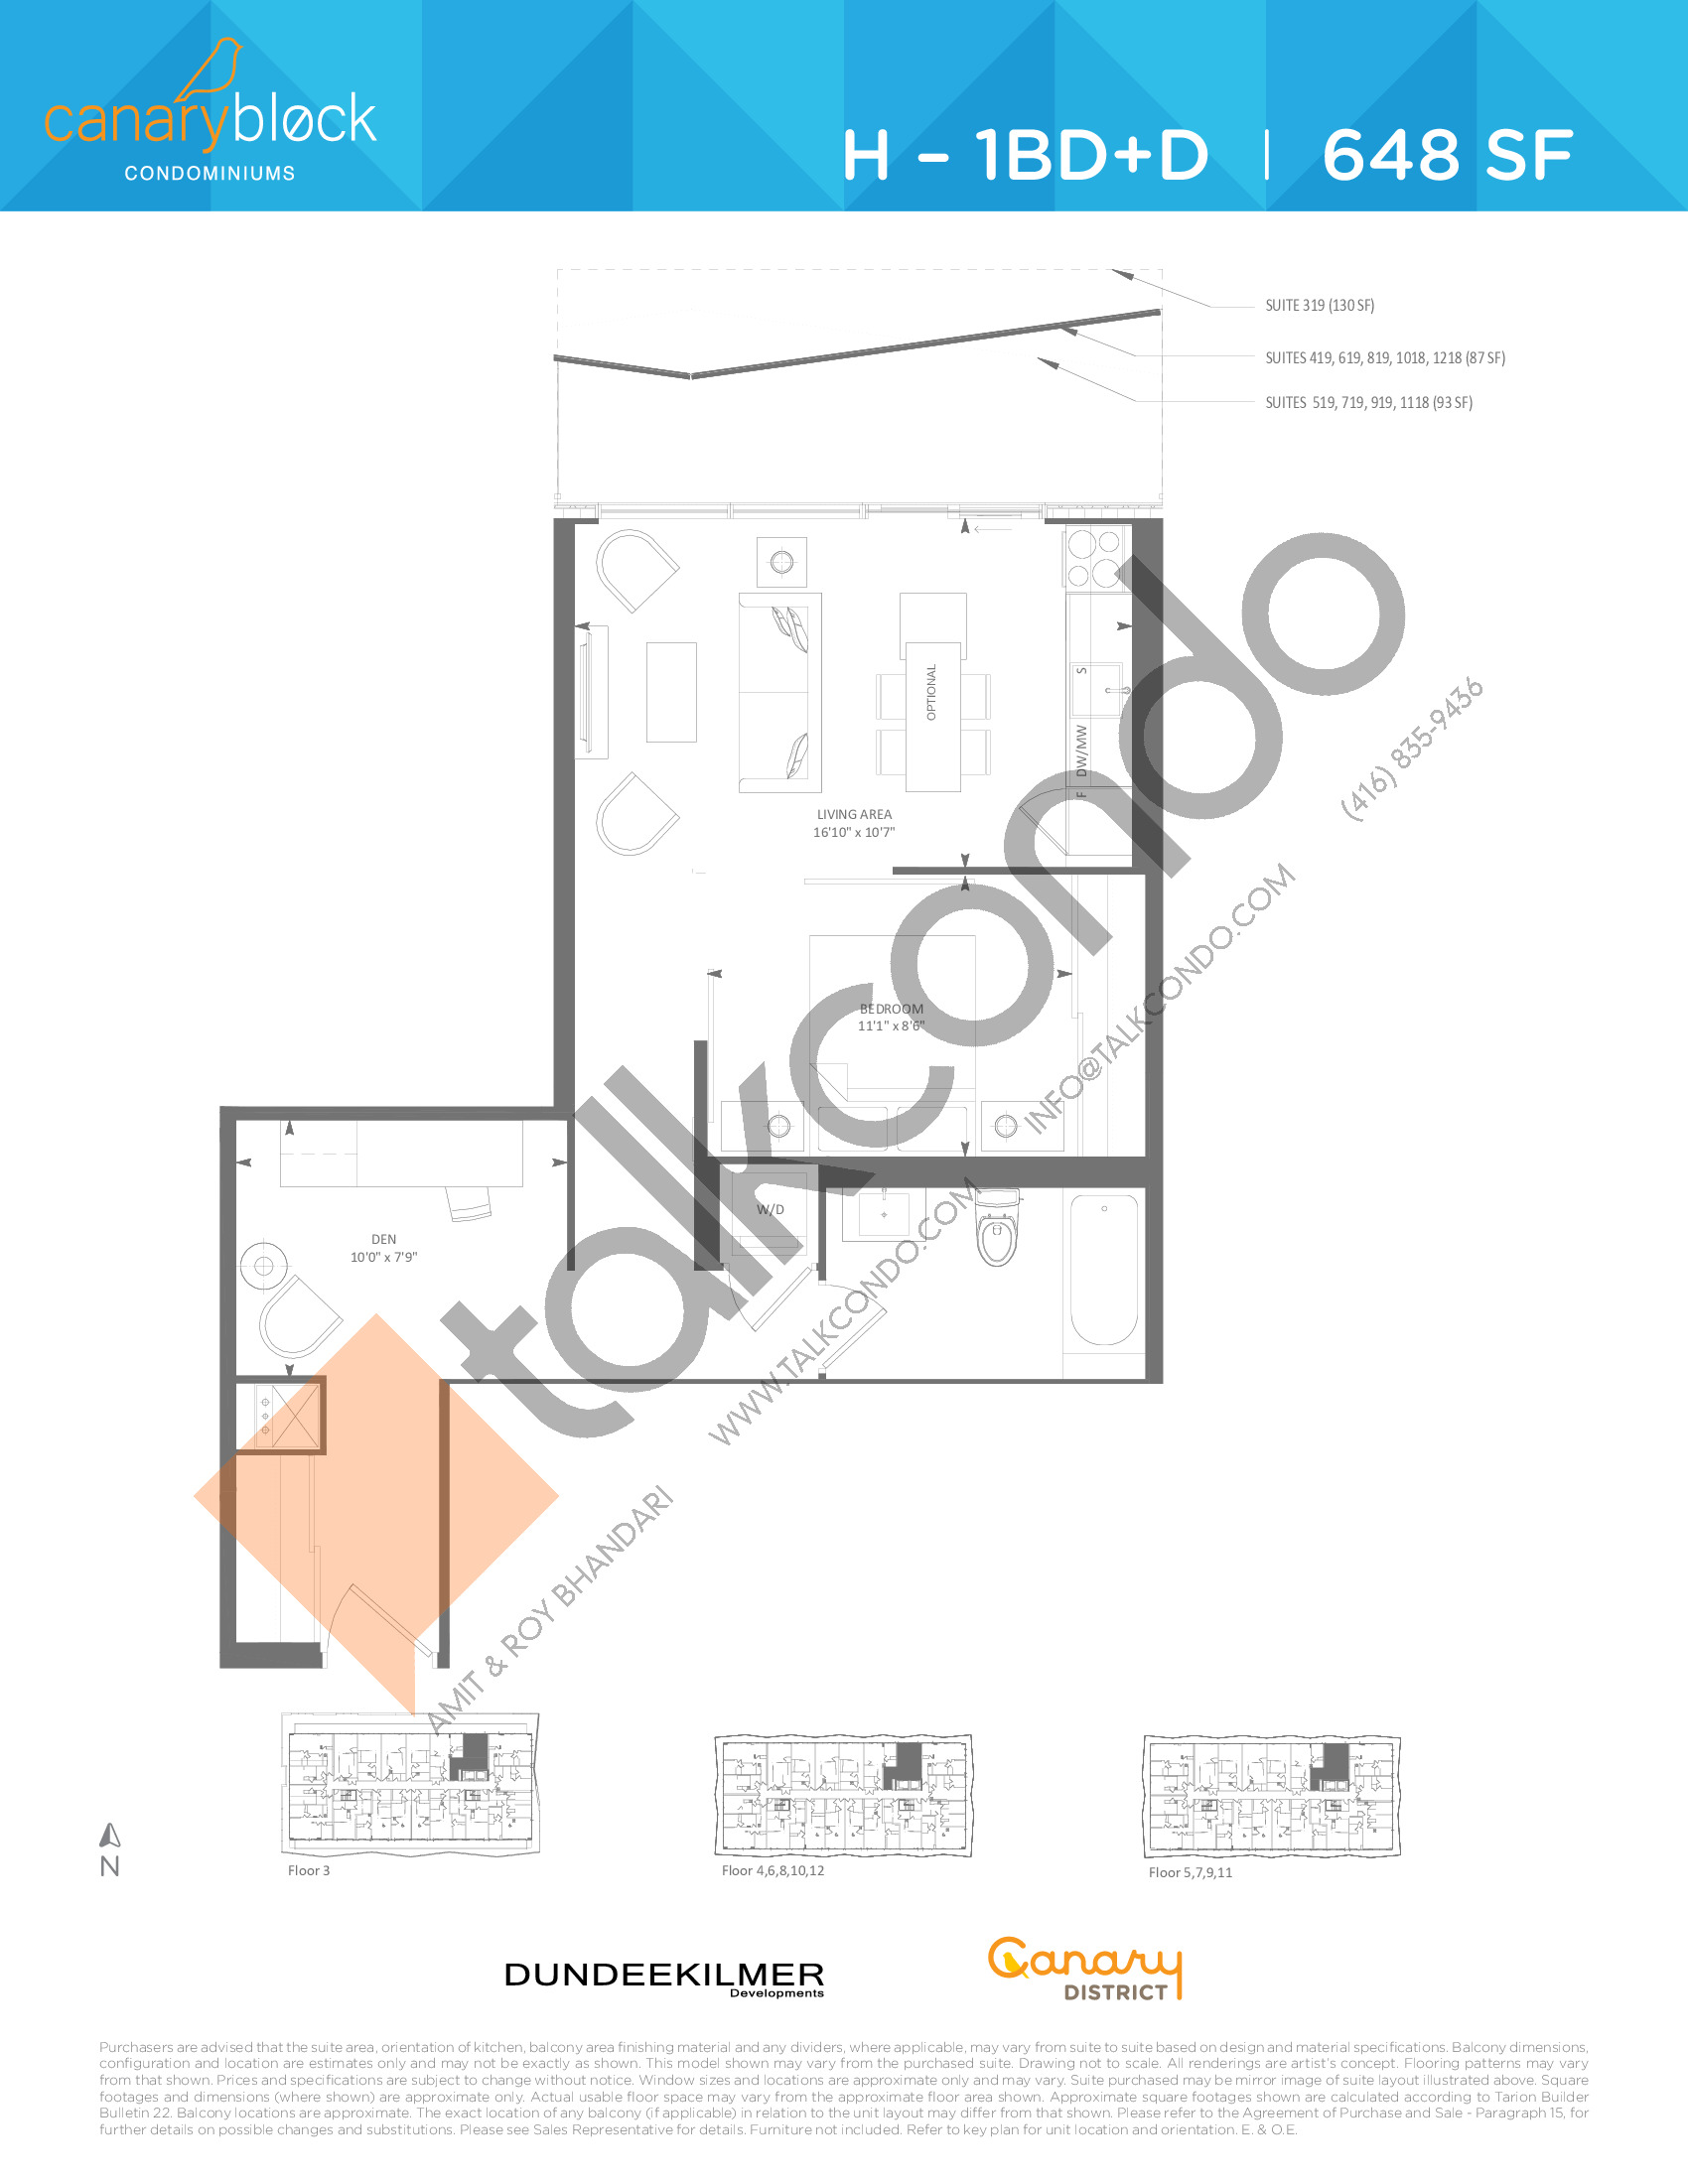 H - 1BD+D Floor Plan at Canary Block Condos - 648 sq.ft